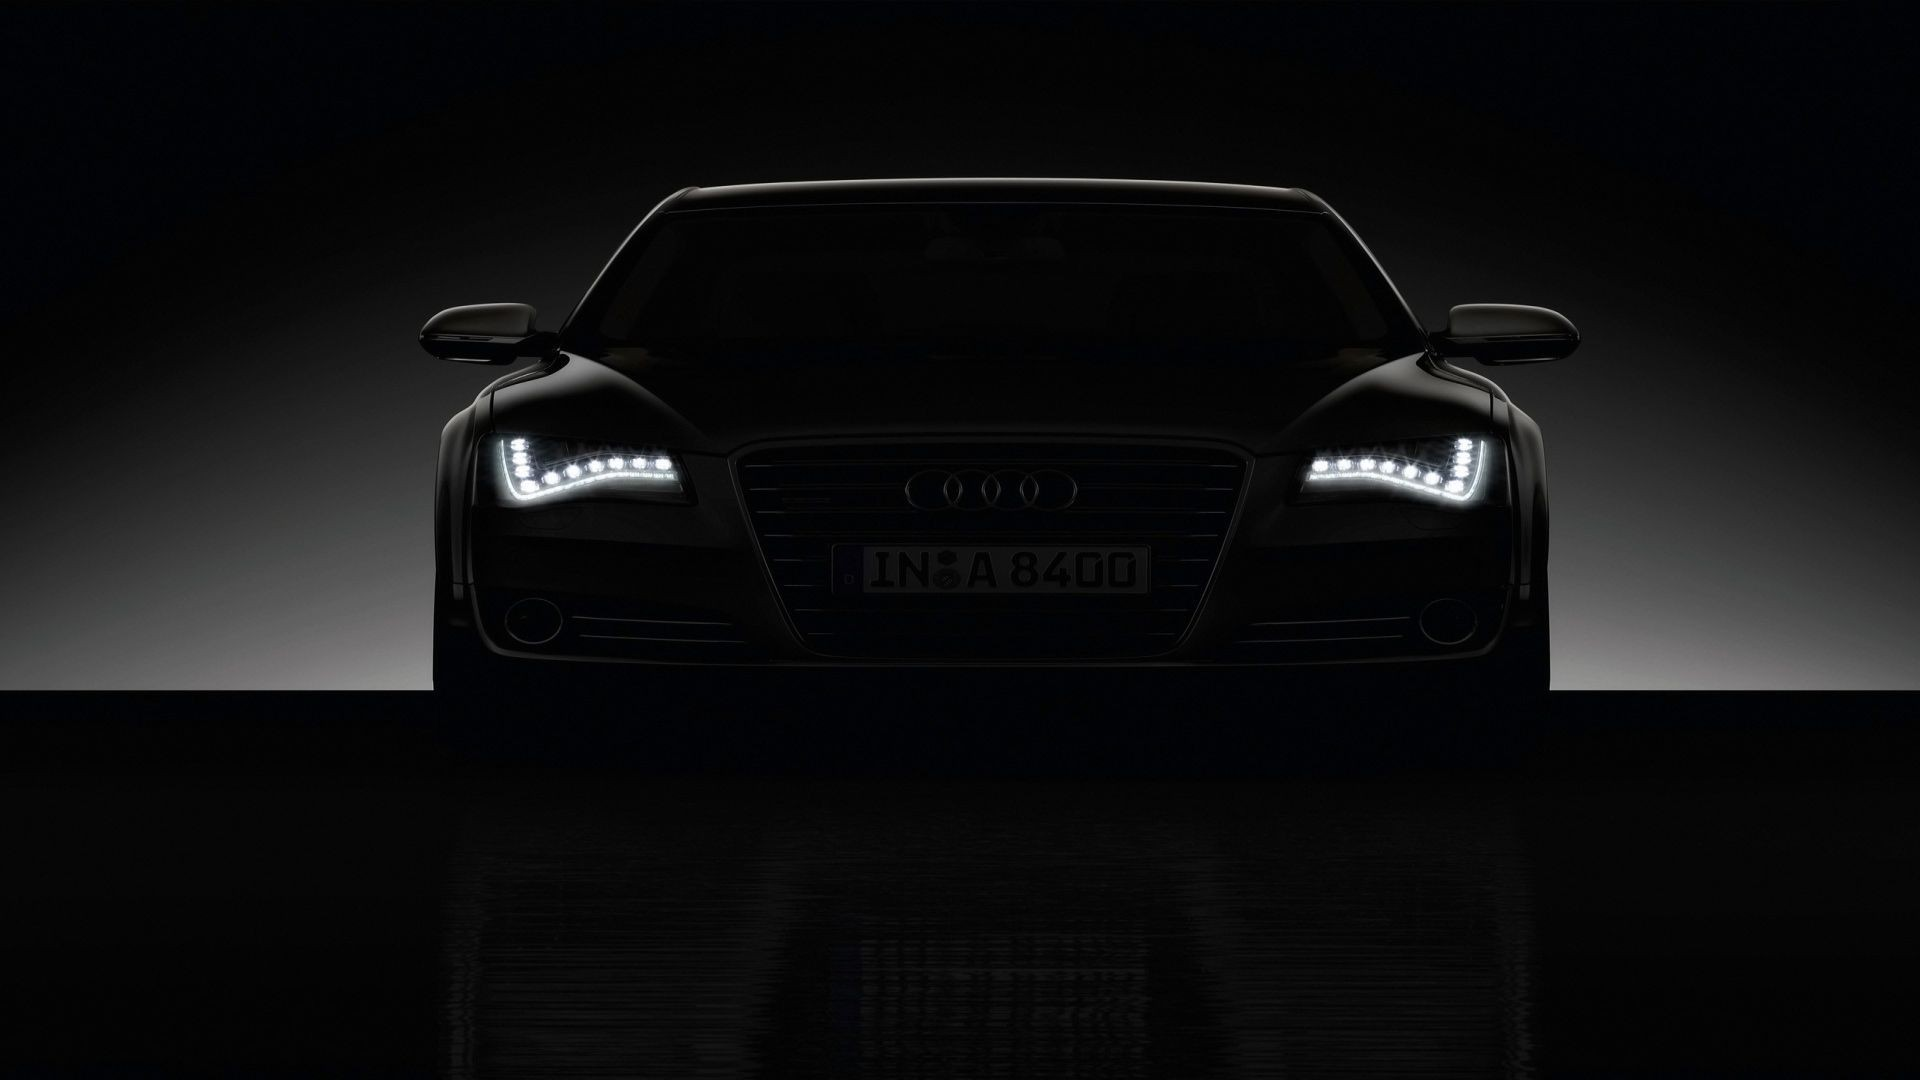 Audi Headlights Hd Cars 4k Wallpapers Images